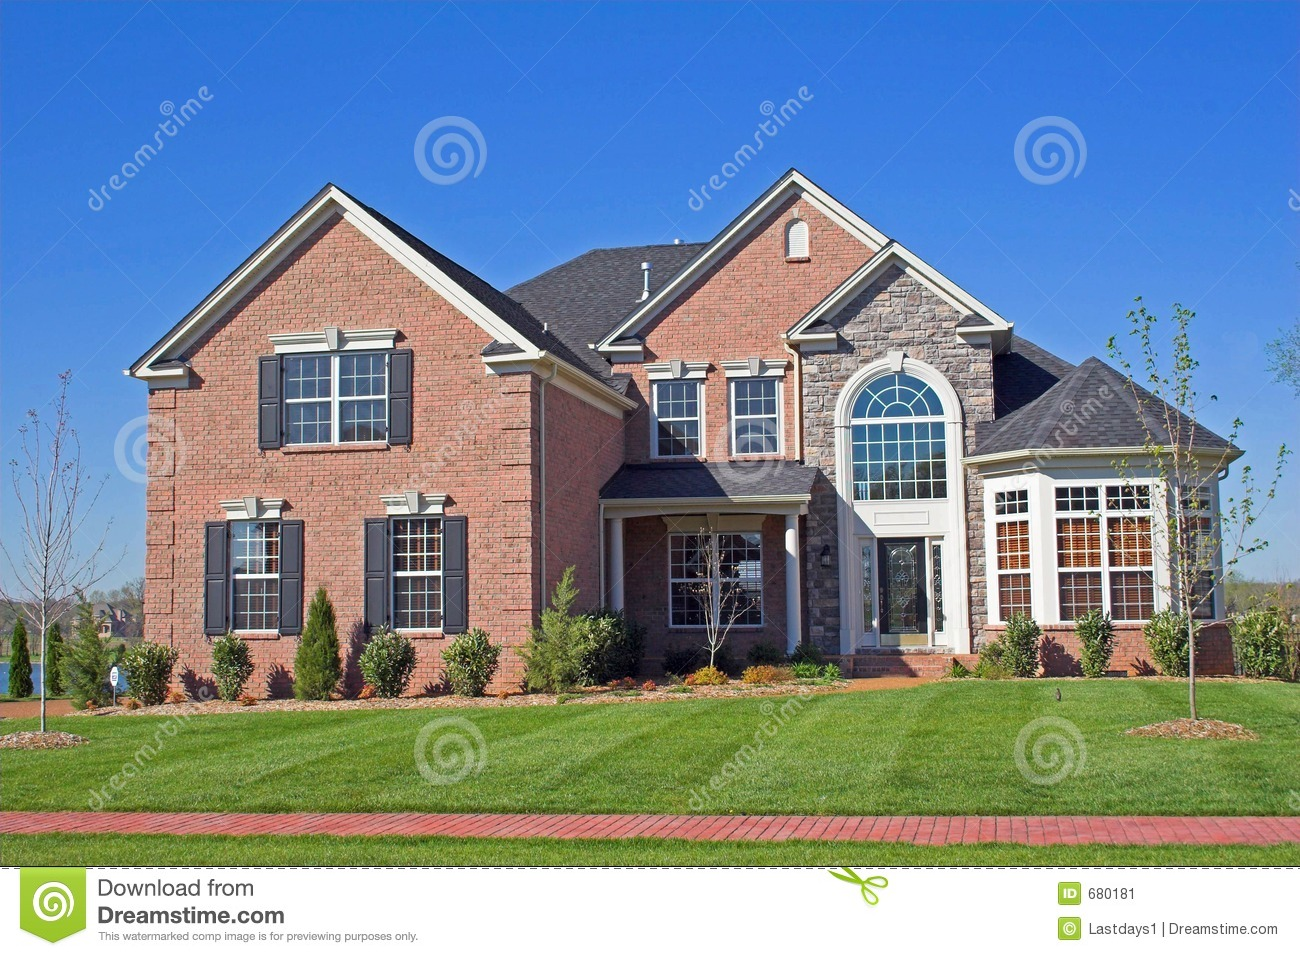 Beautiful homes series 1d stock image image 680181 for House beautiful homes